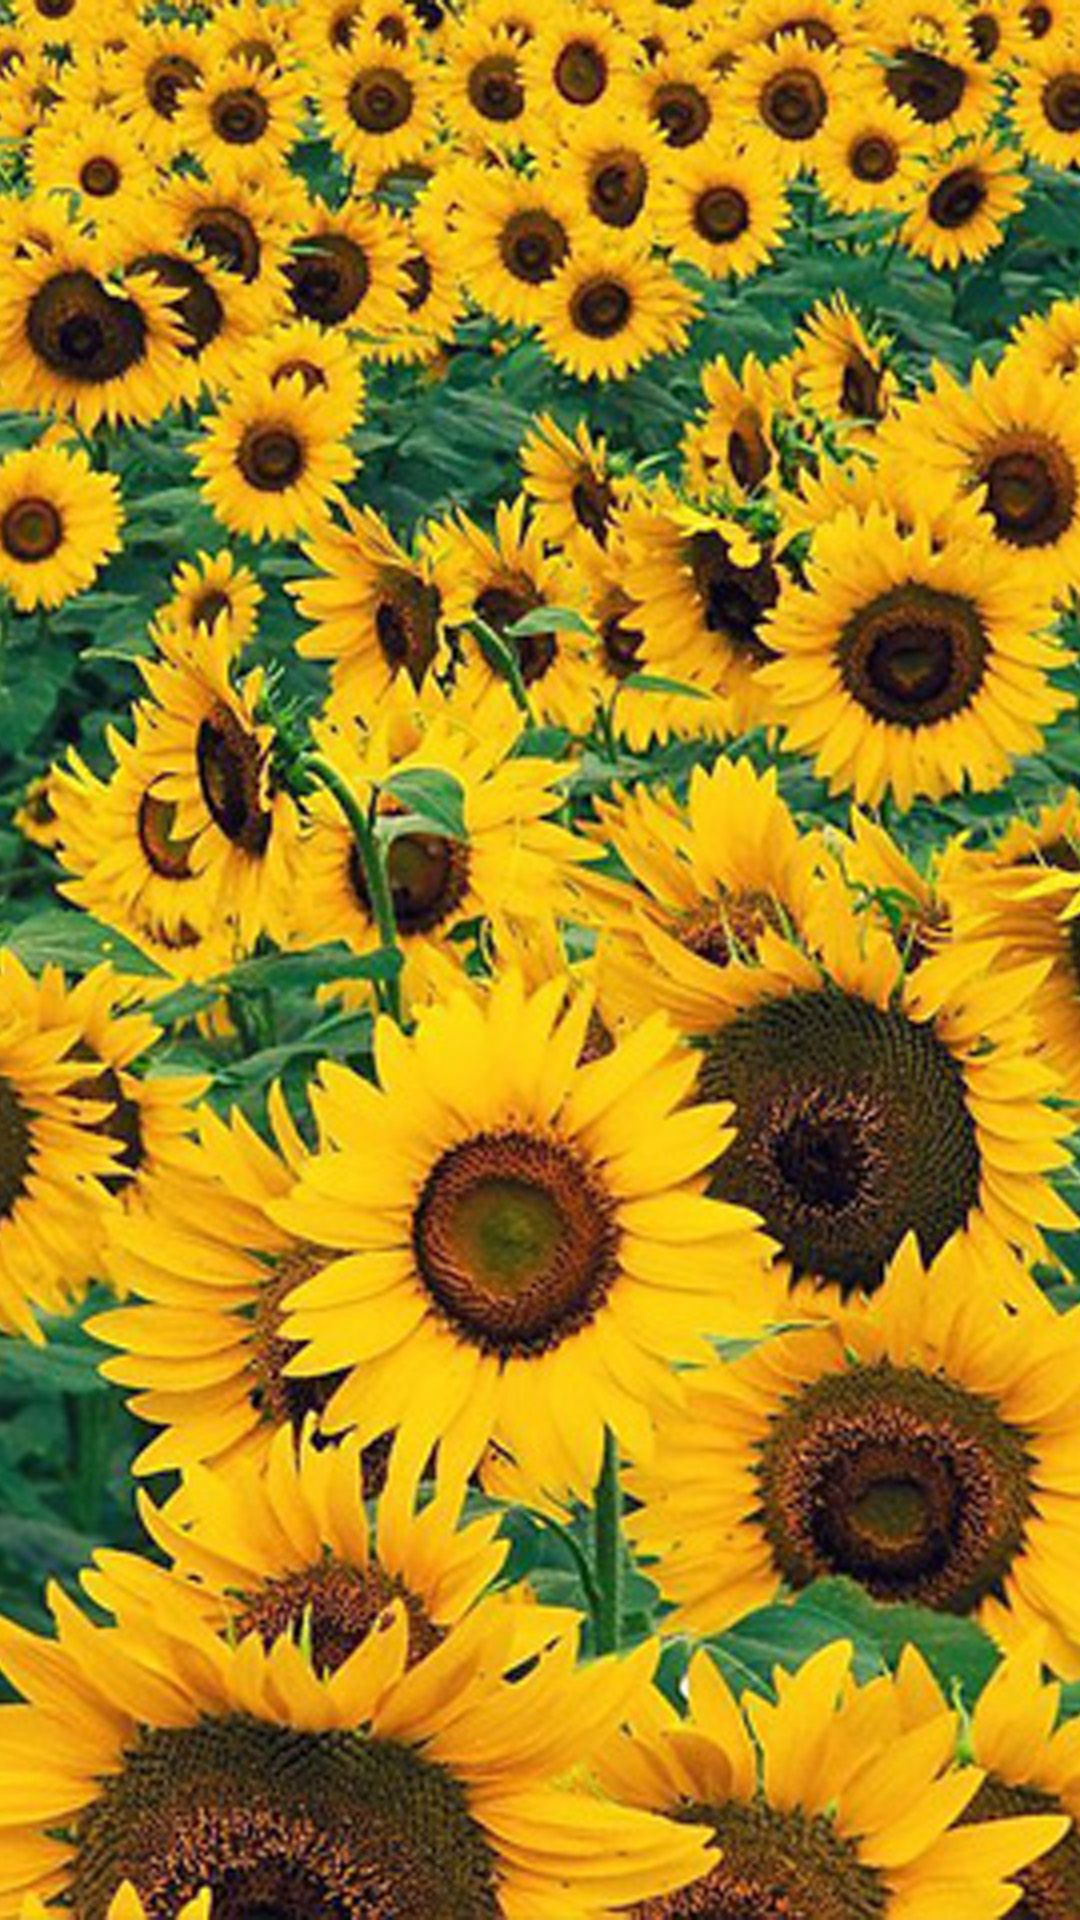 Sunflower Wallpapers Best Wallpapers  Wallpapers in 2019  Sunflower iphone wallpaper